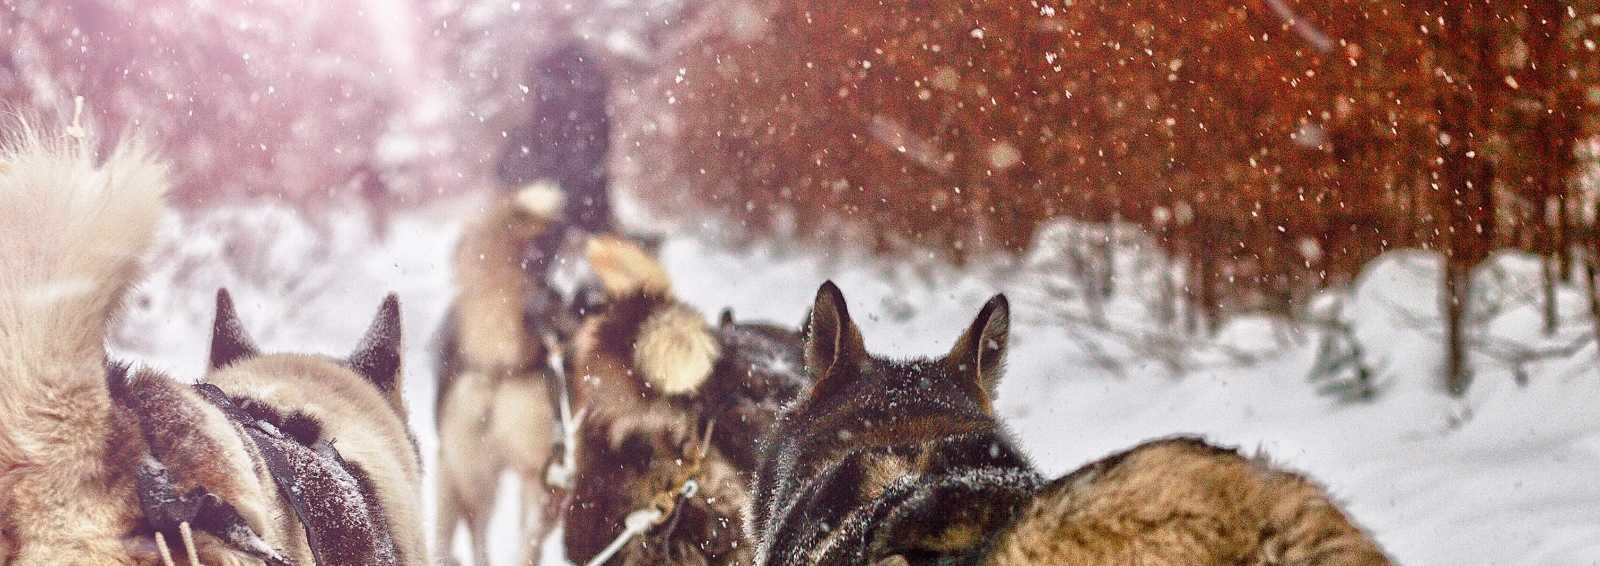 Winter Dog Sledding Norway